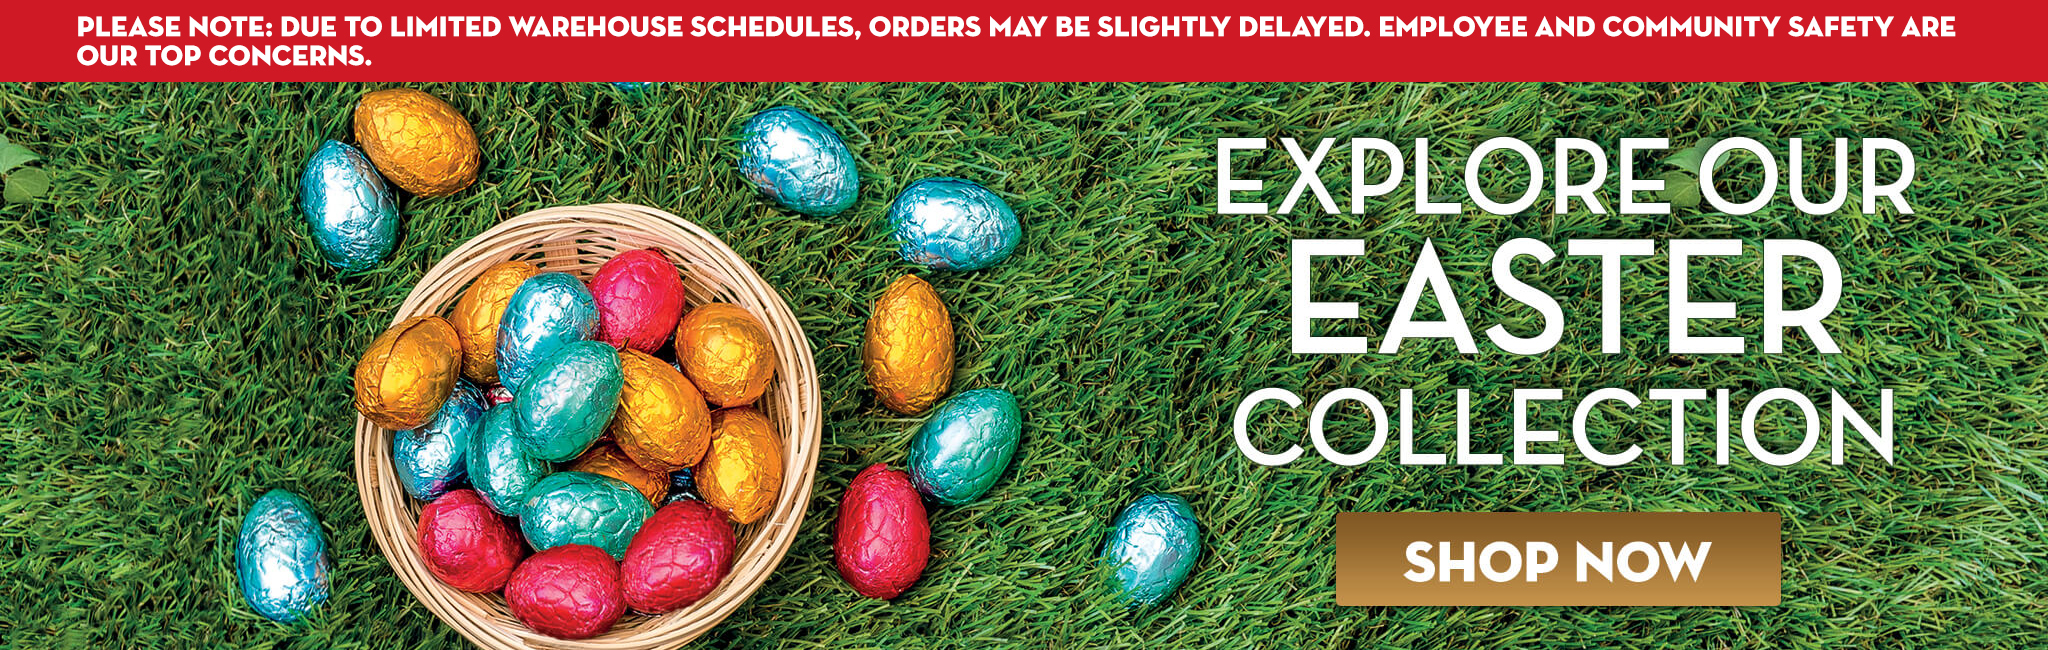 Easter Sale during Covid